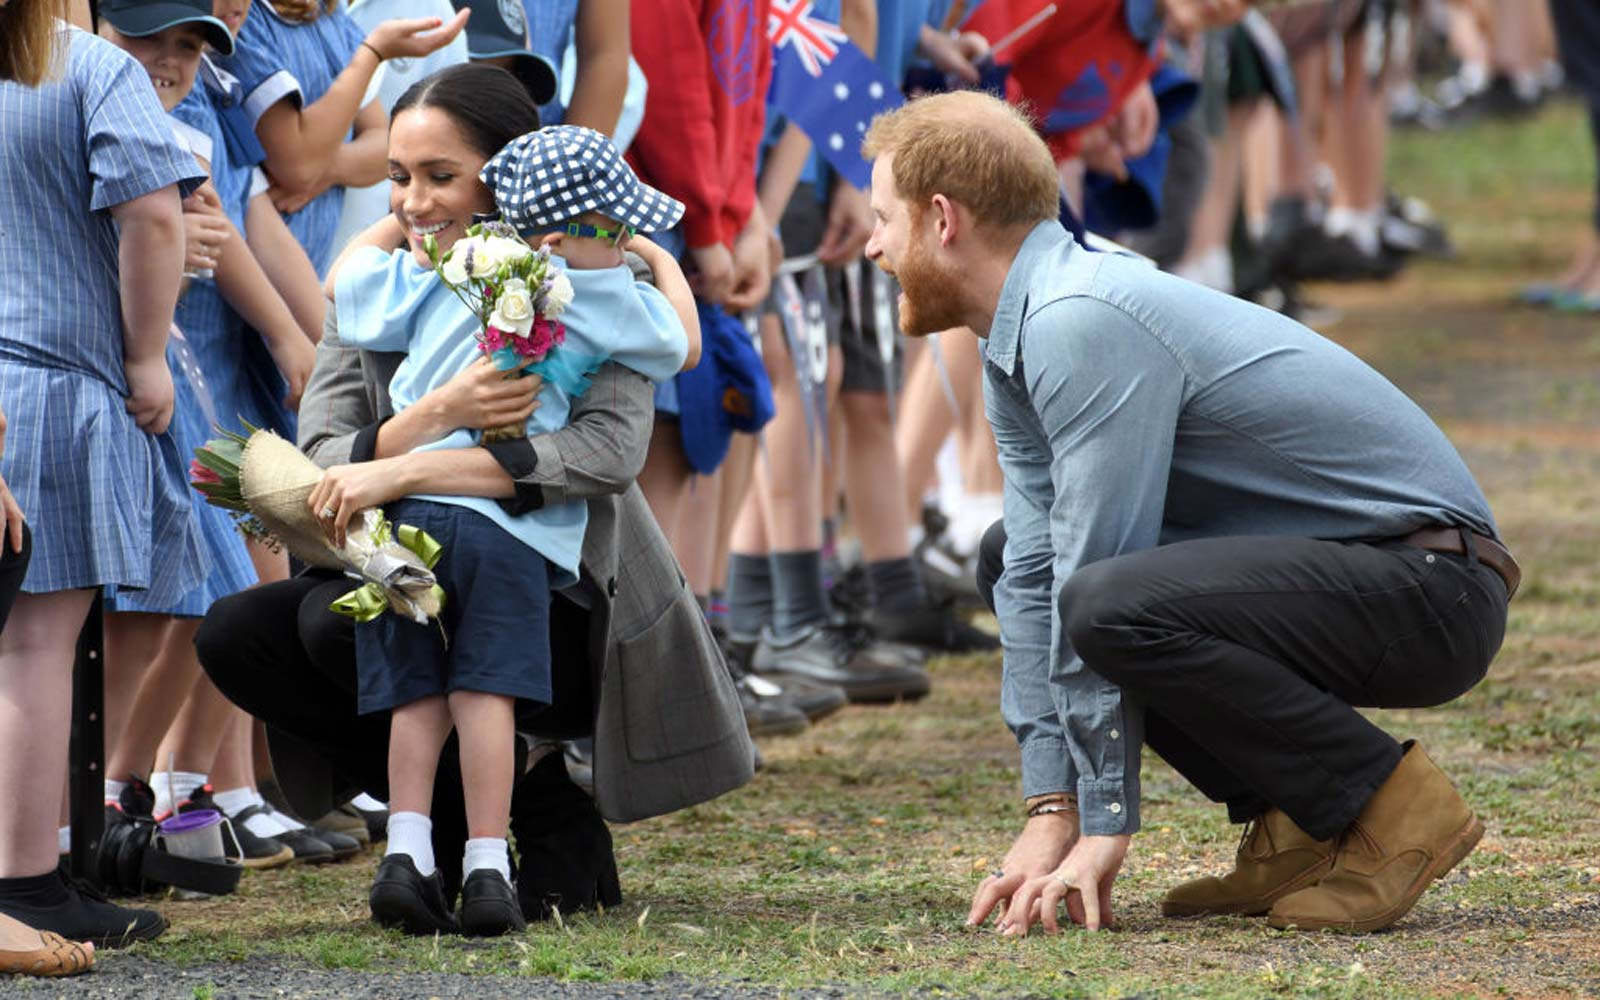 Prince Harry, Duke of Sussex and Meghan, Duchess of Sussex arrive at Dubbo airport and is greeted by 5 year old Luke Vincent